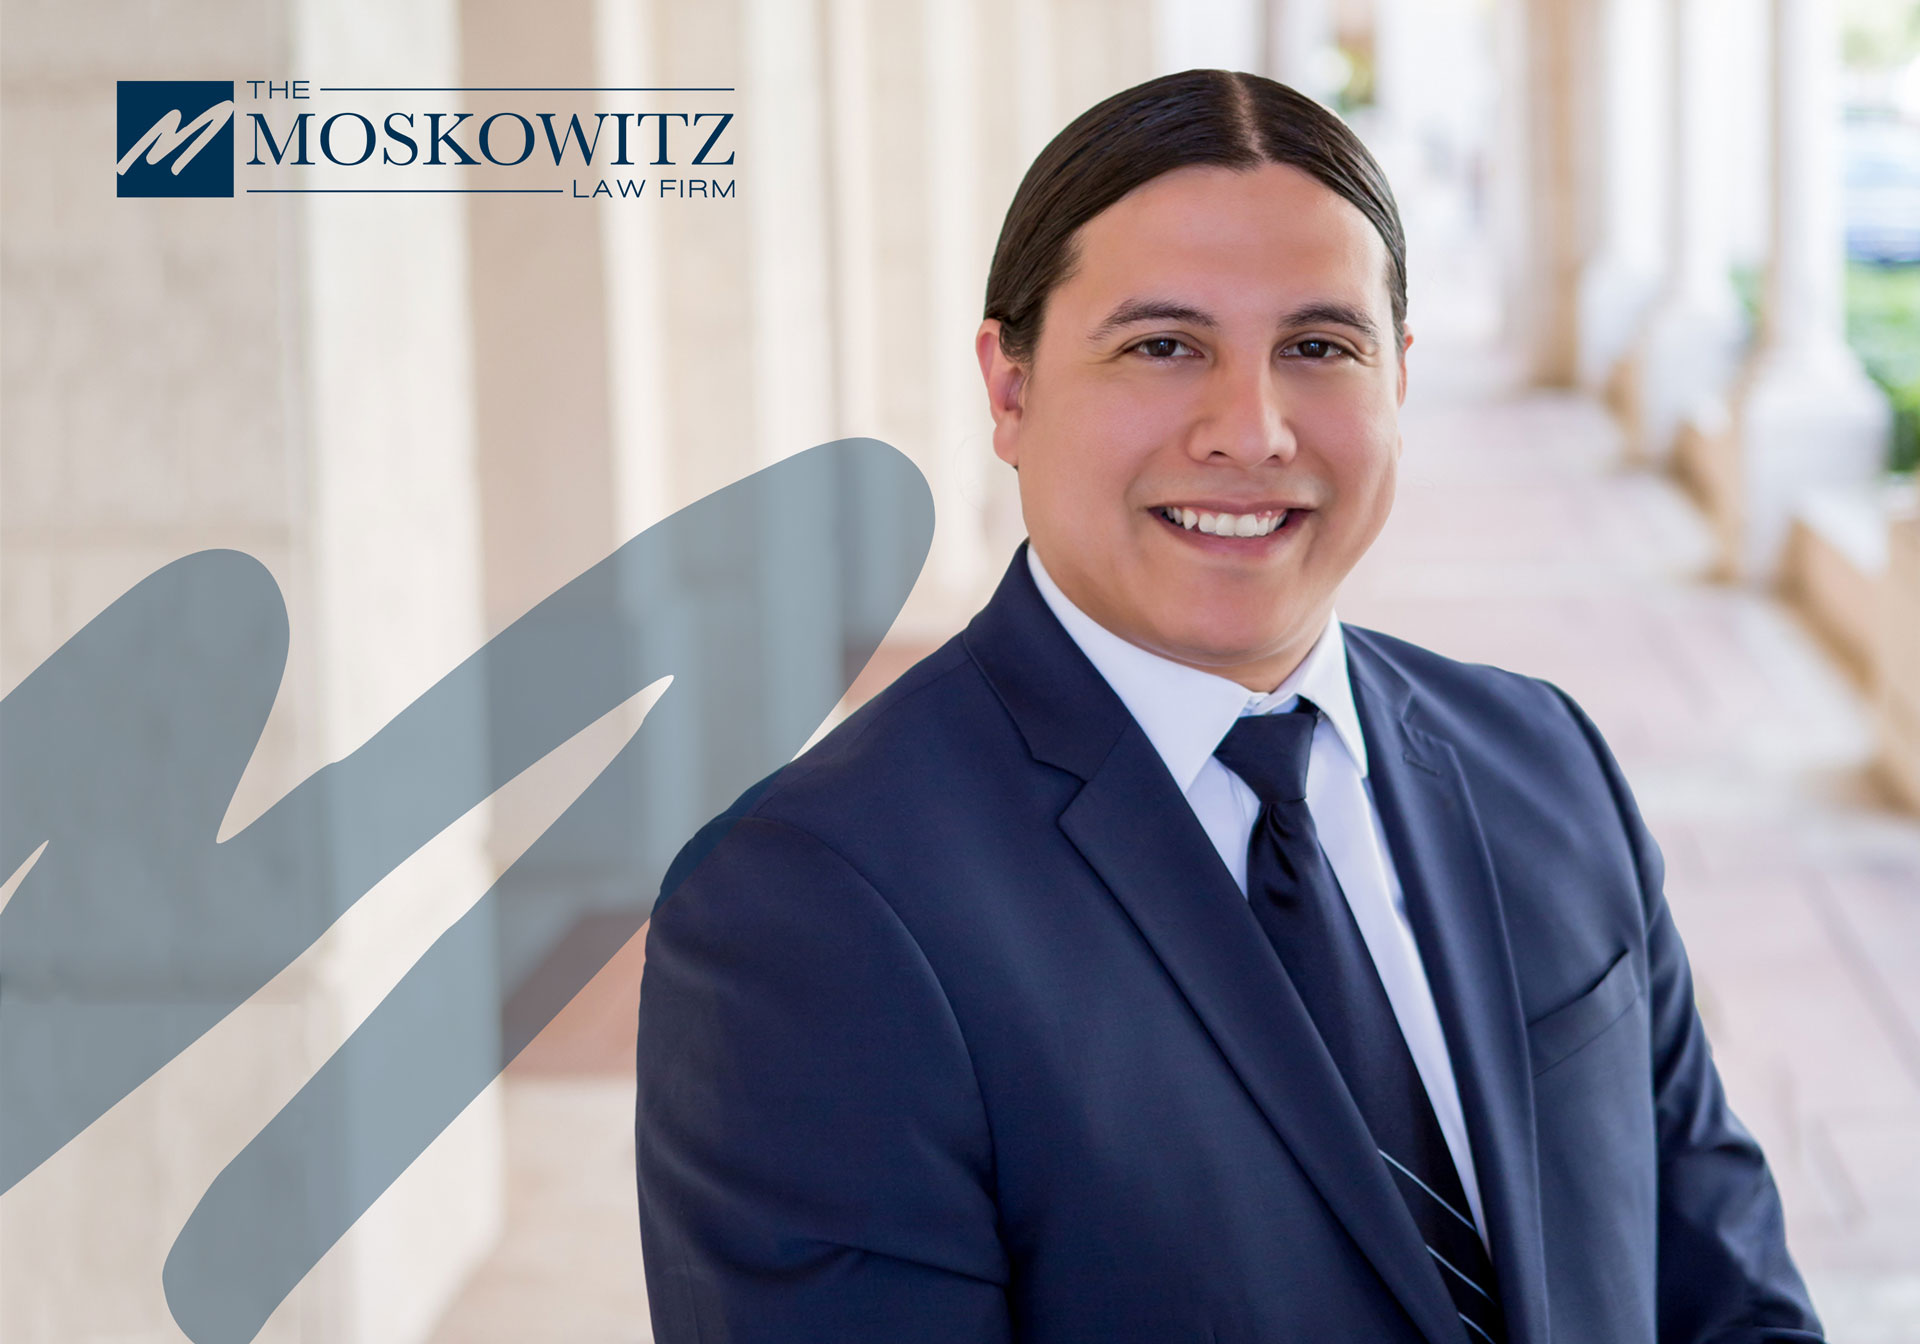 daily-business-review-profile-curtis-osceola-of-the-moskowitz-law-firm.jpg